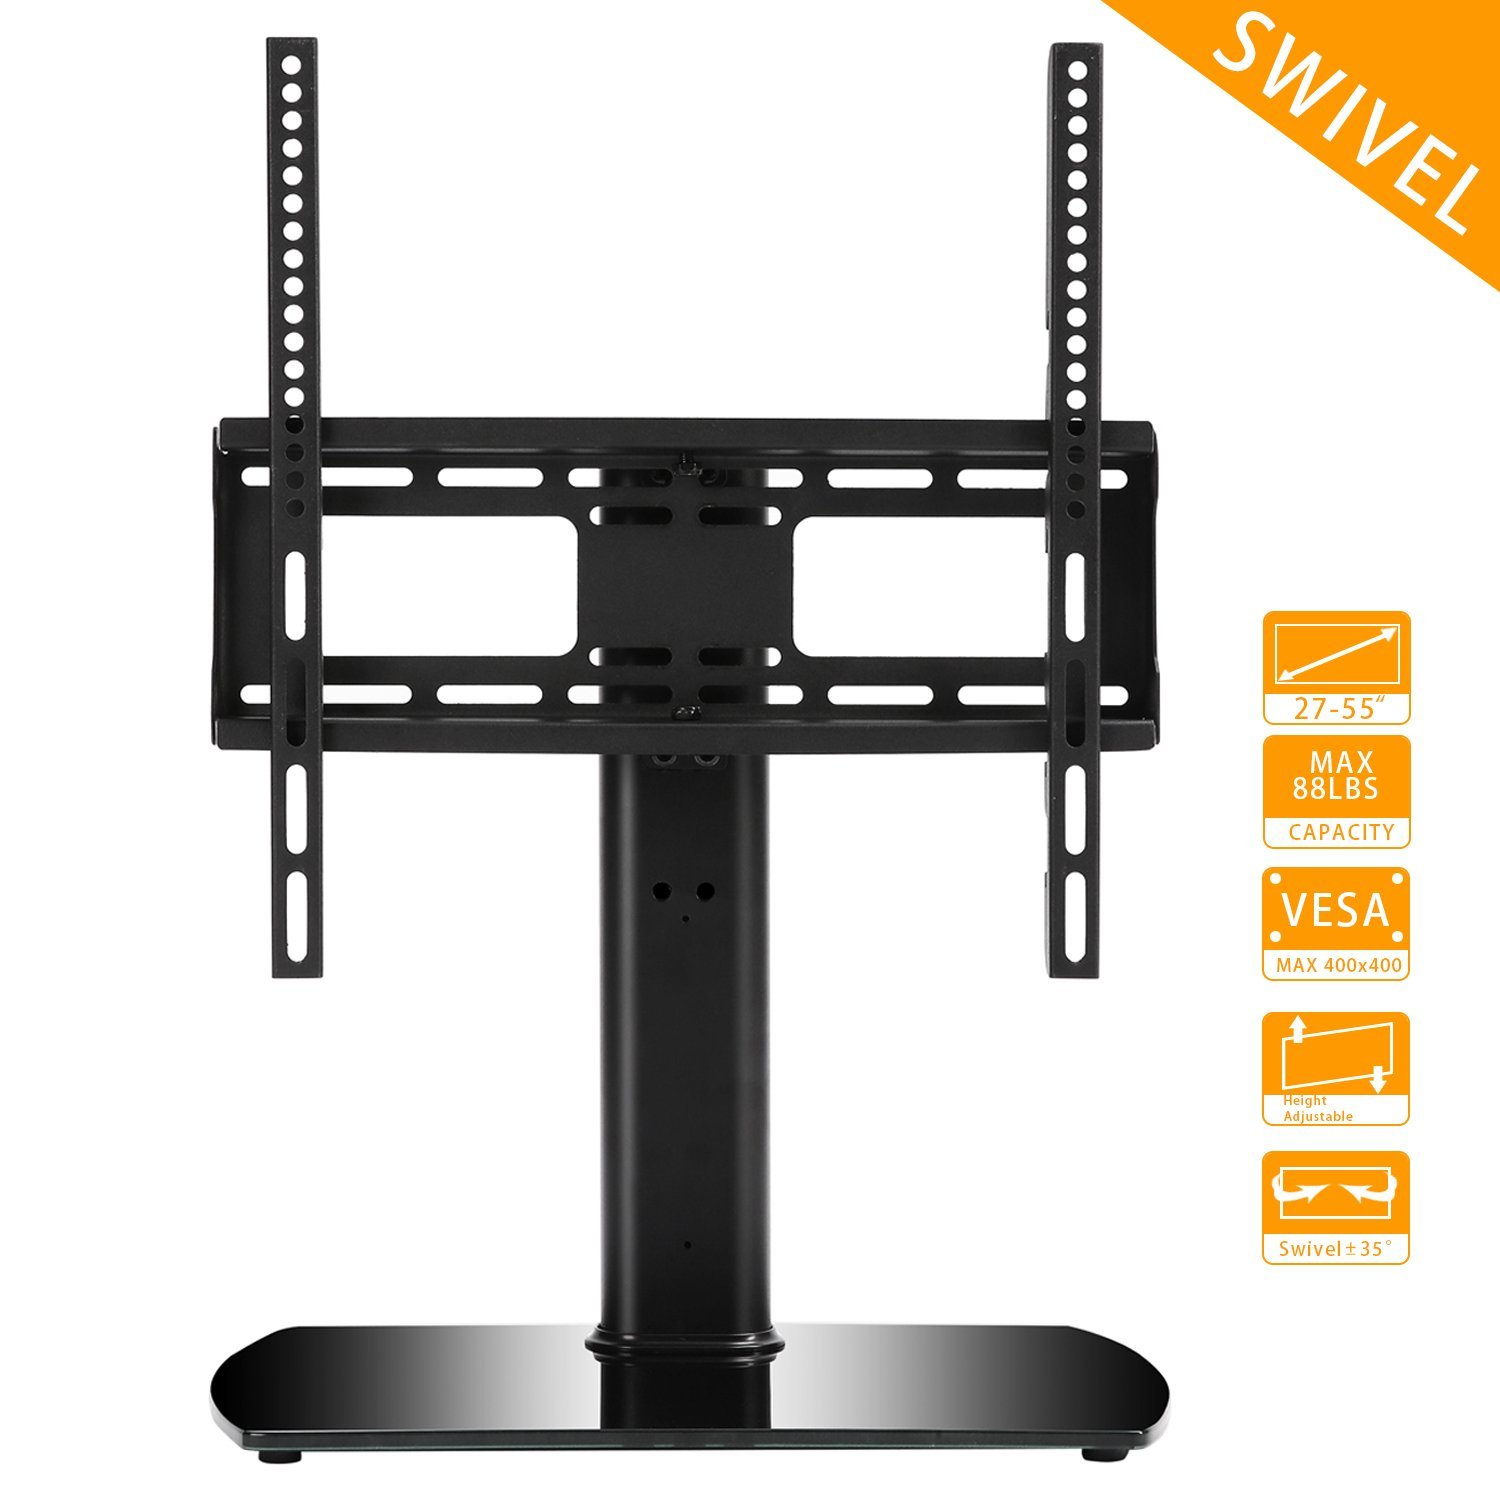 Rfiver Universal Swivel Tabletop TV Stand with Mount for 27 inch to 55 inch LED,LCD and Plasma Flat Screen TVs with Height Adjustment VESA 400x400mm, UT2002